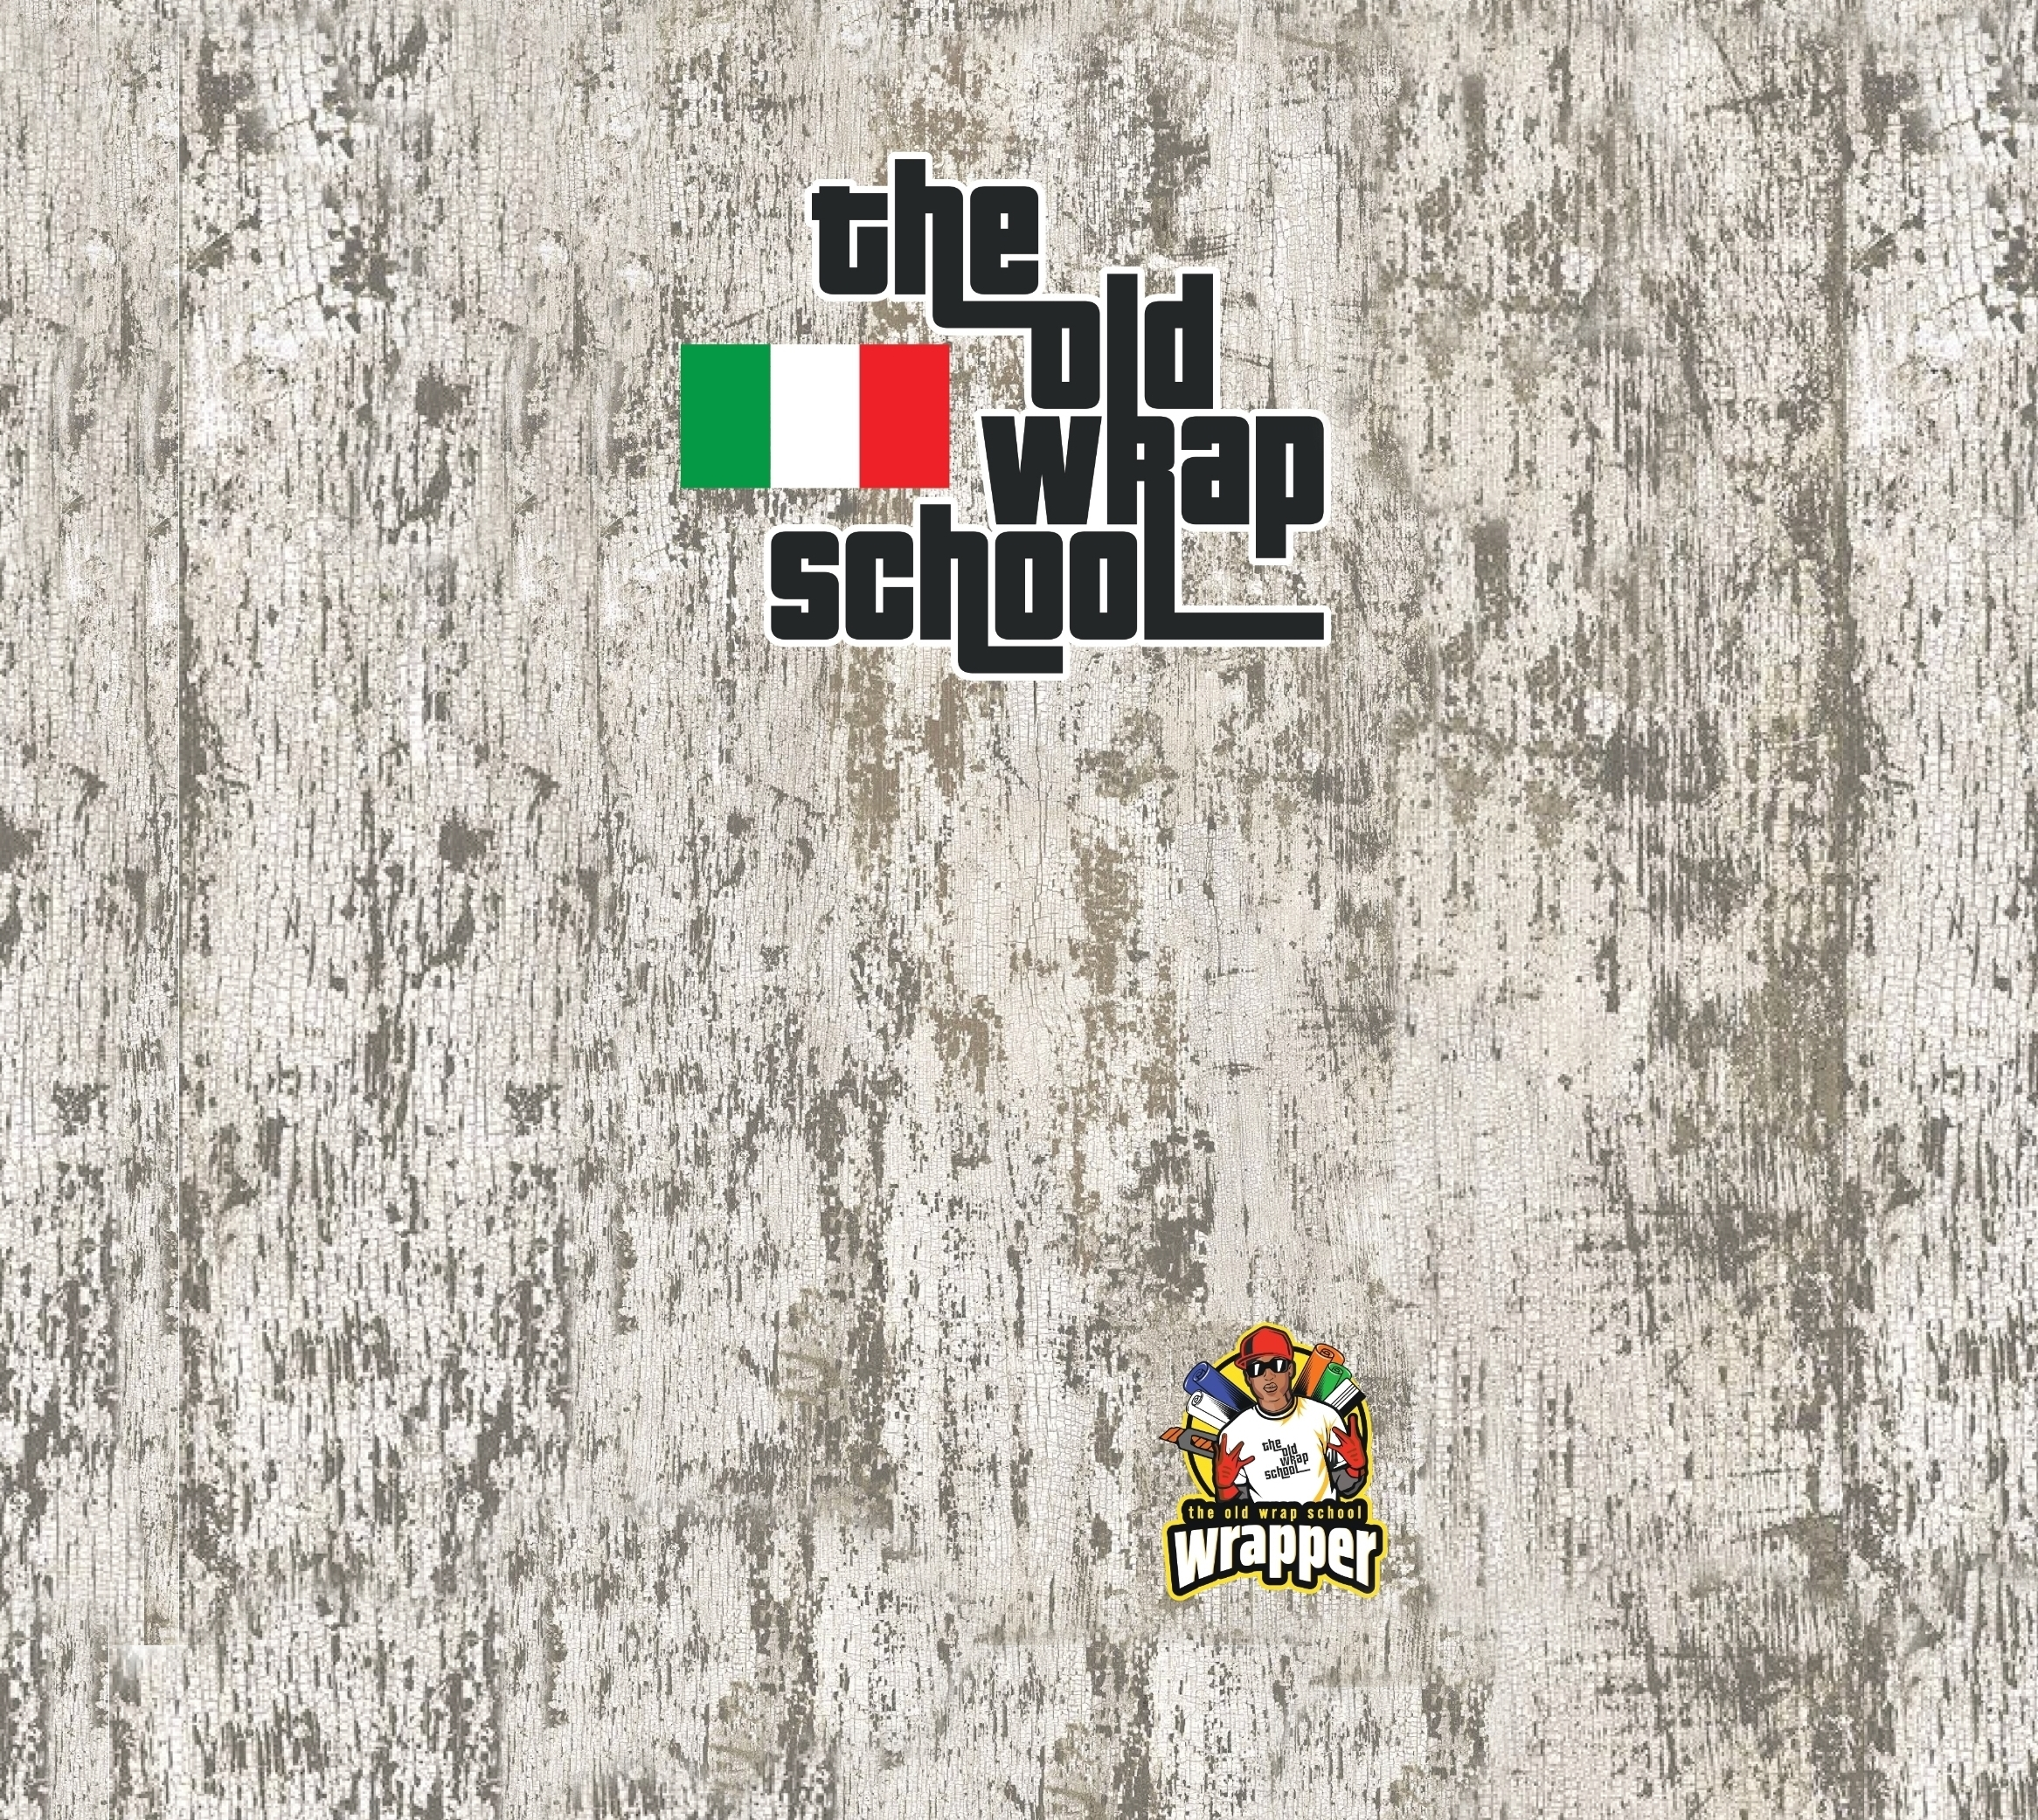 The old wrao school